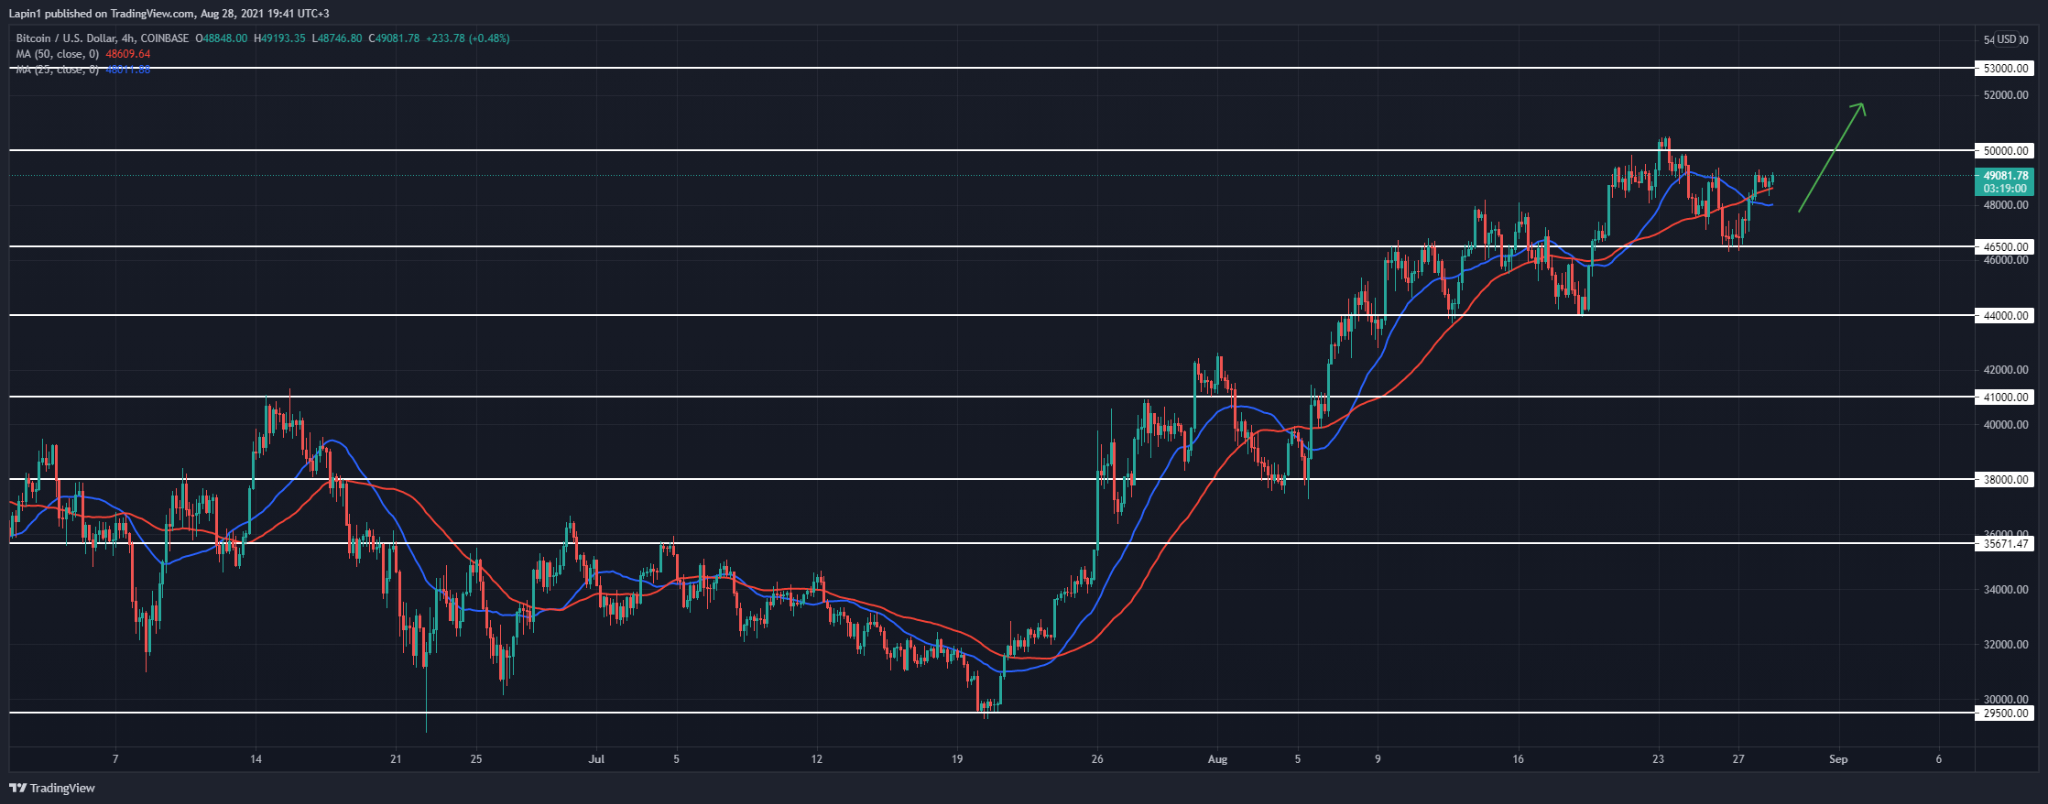 Bitcoin Price Analysis: BTC rallies from $46,500, set to break $50,000 over the weekend?